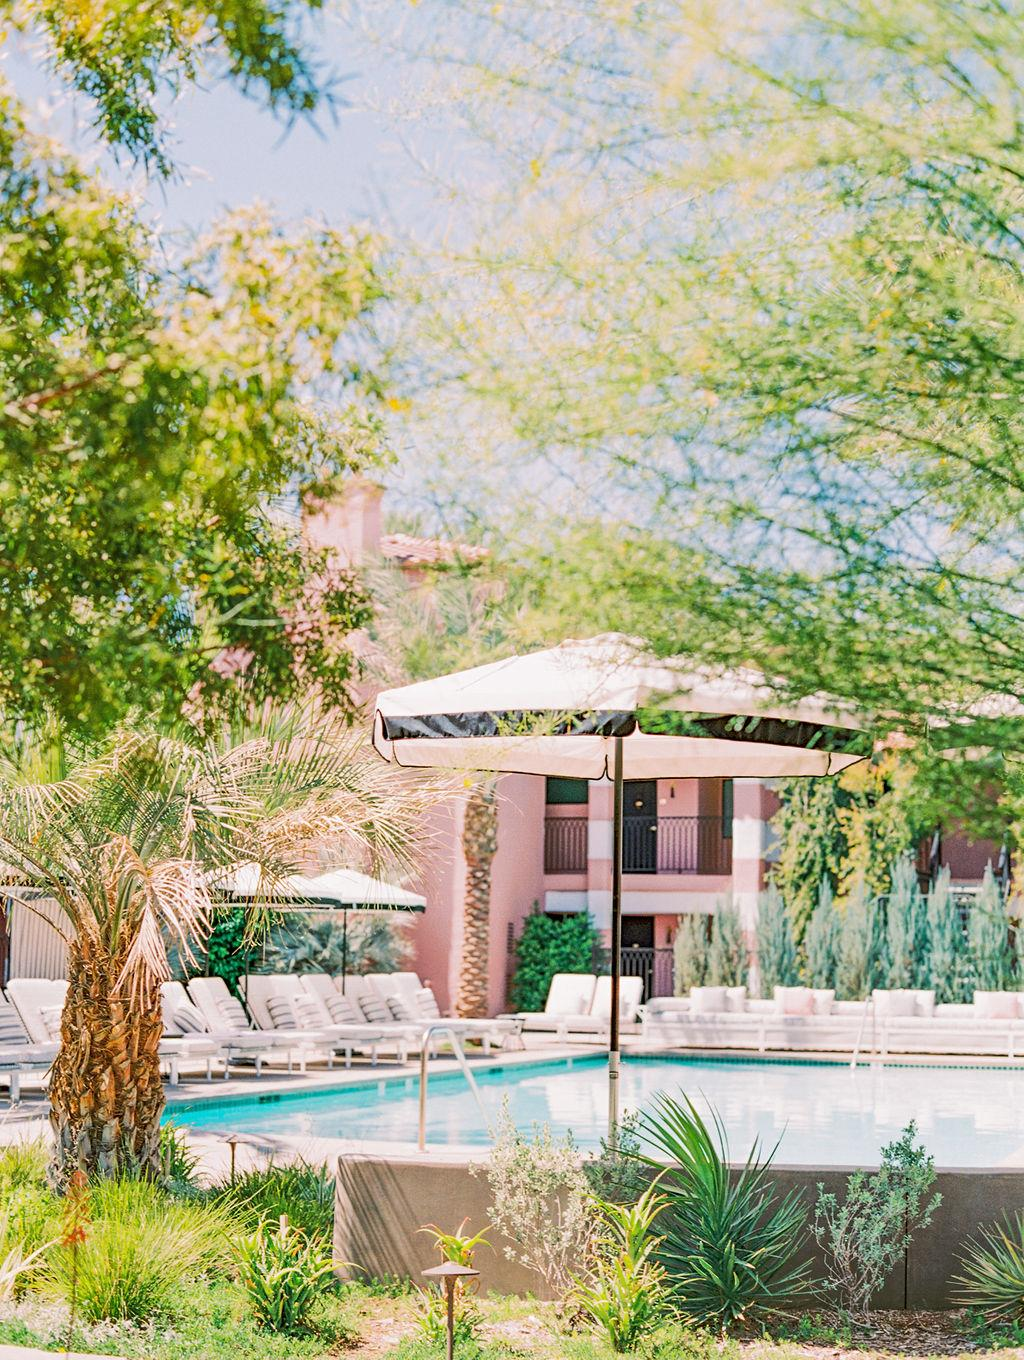 Sands Hotel and Spa wedding venue https://itgirlweddings.com/styled-shoot-with-pink-tropical-wedding-vibes/